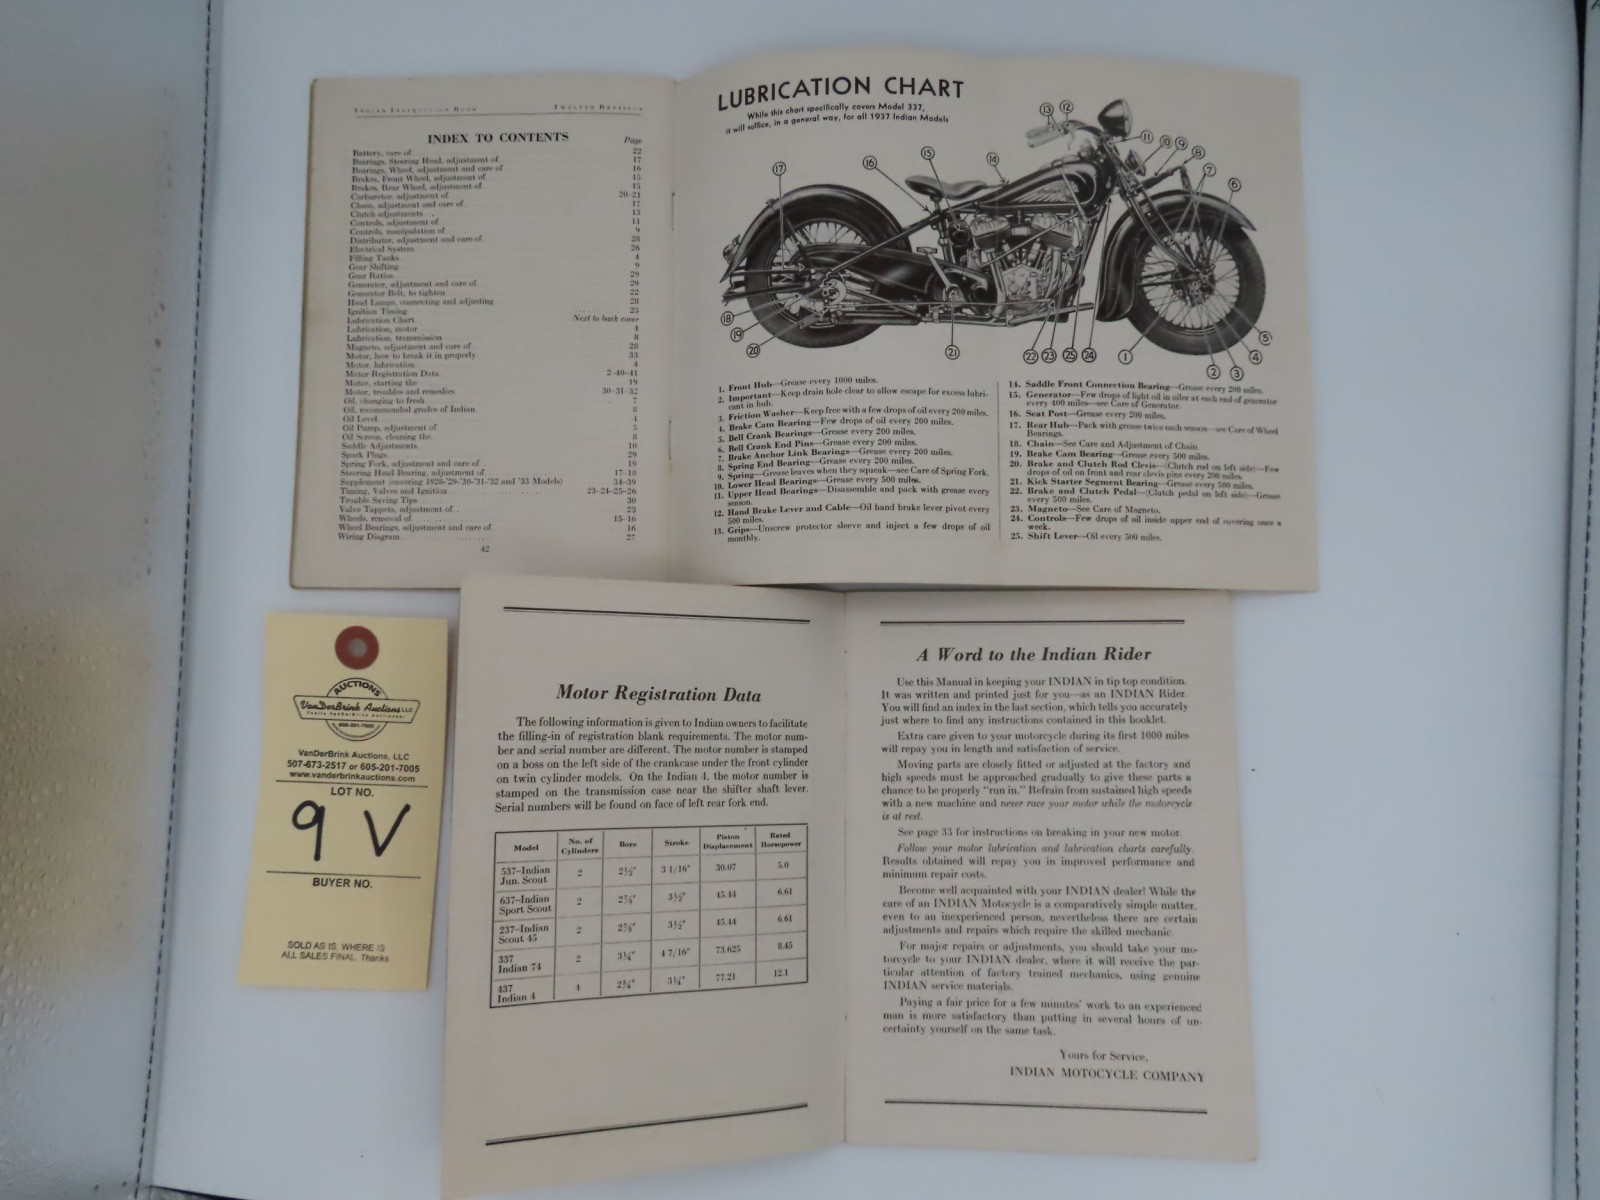 1938 Indian Riders' Instruction Book - Image 2